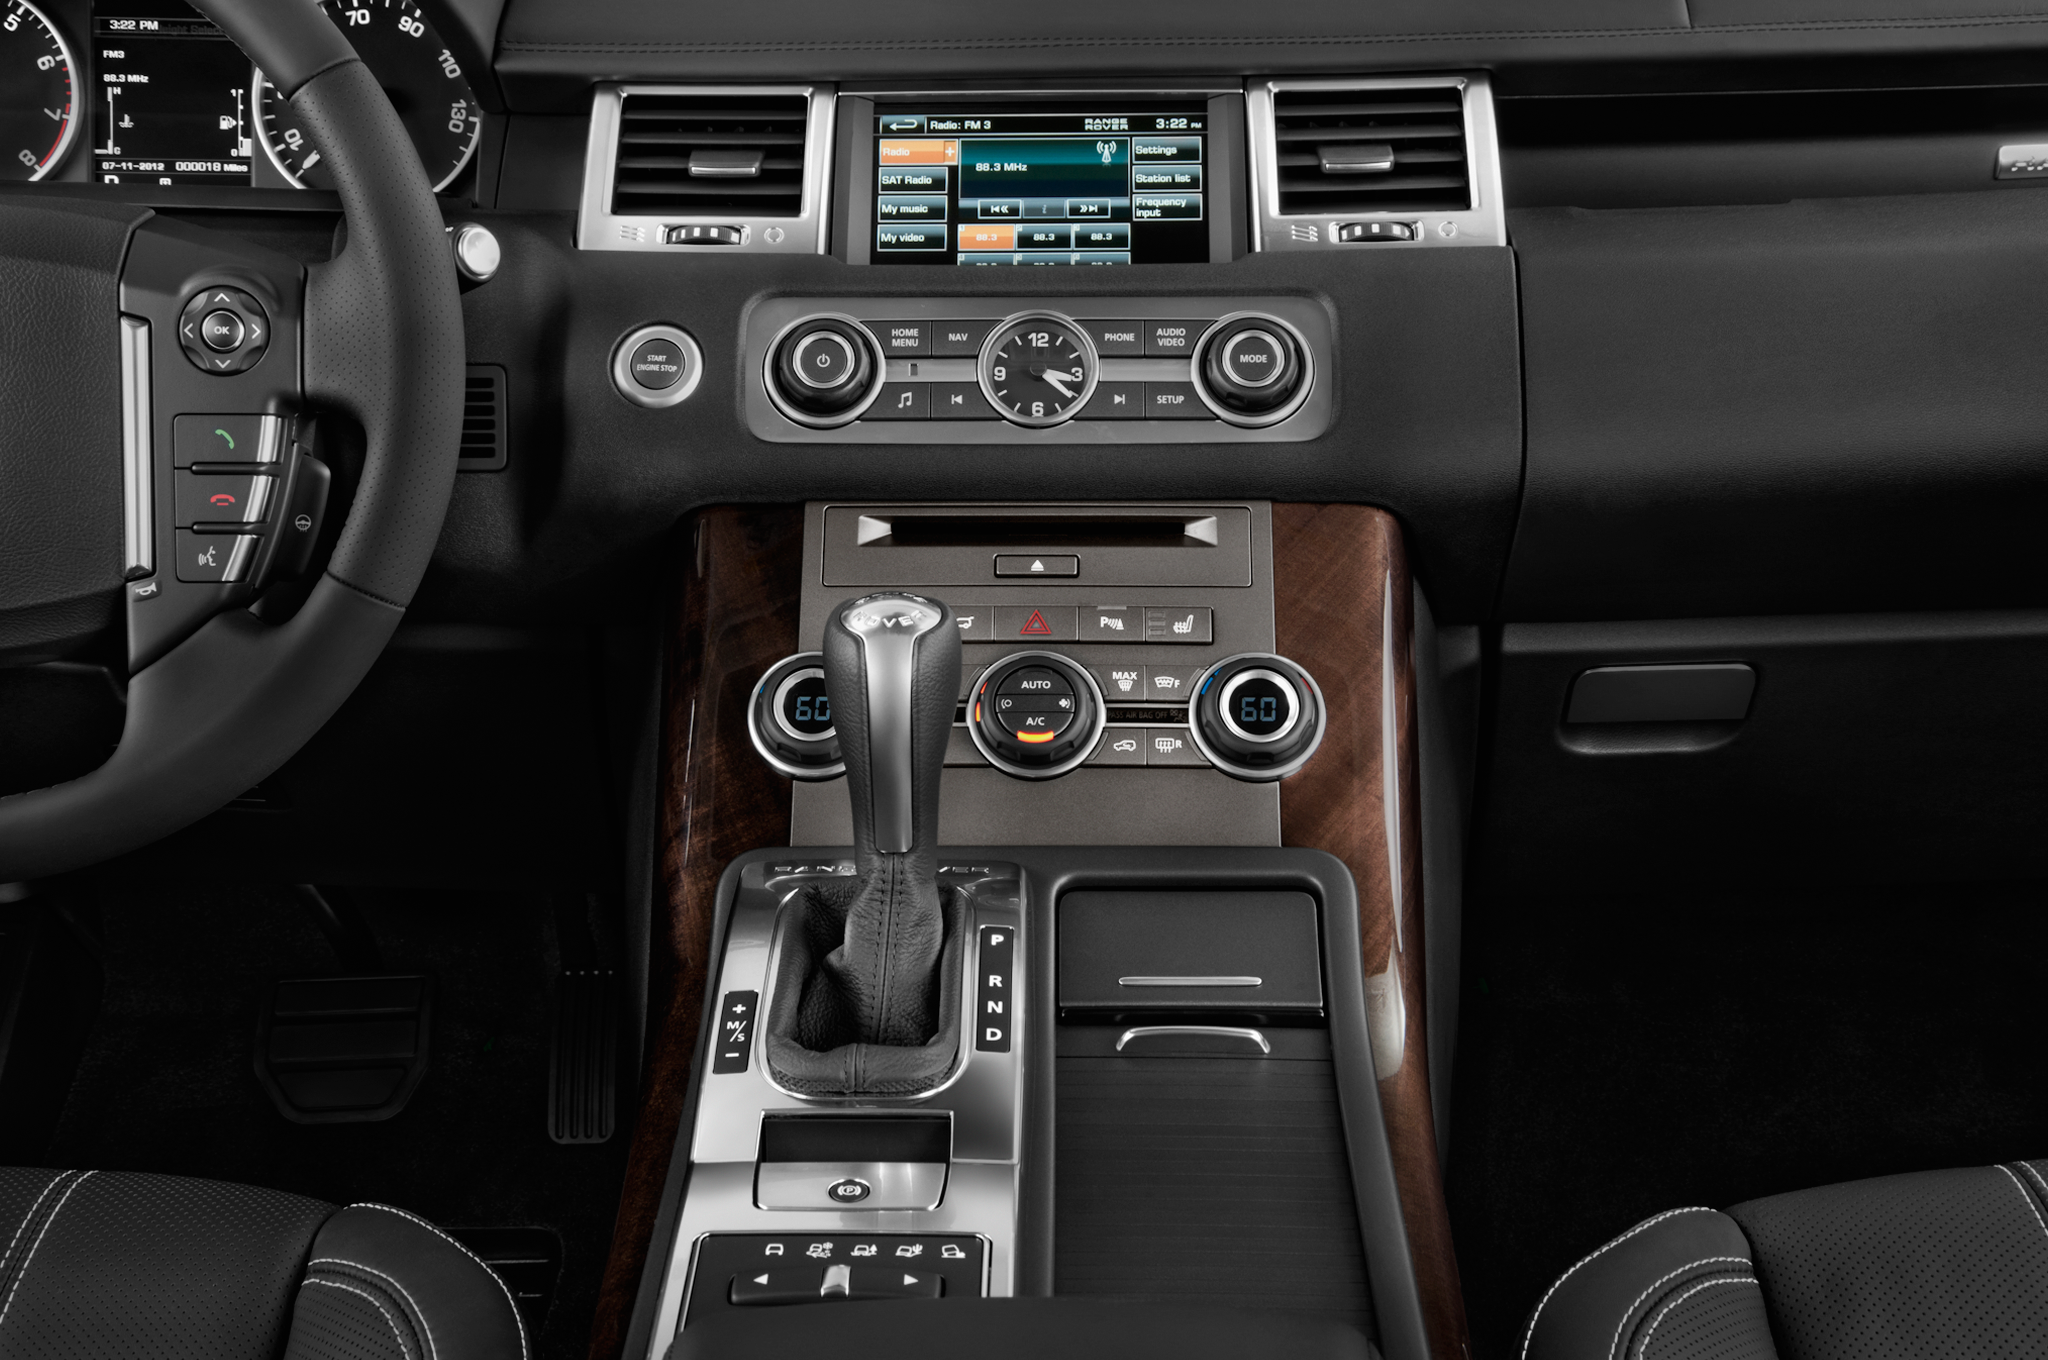 http://st.automobilemag.com/uploads/sites/10/2015/11/2012-land-rover-range-rover-sport-hse-suv-instrument-panel.png